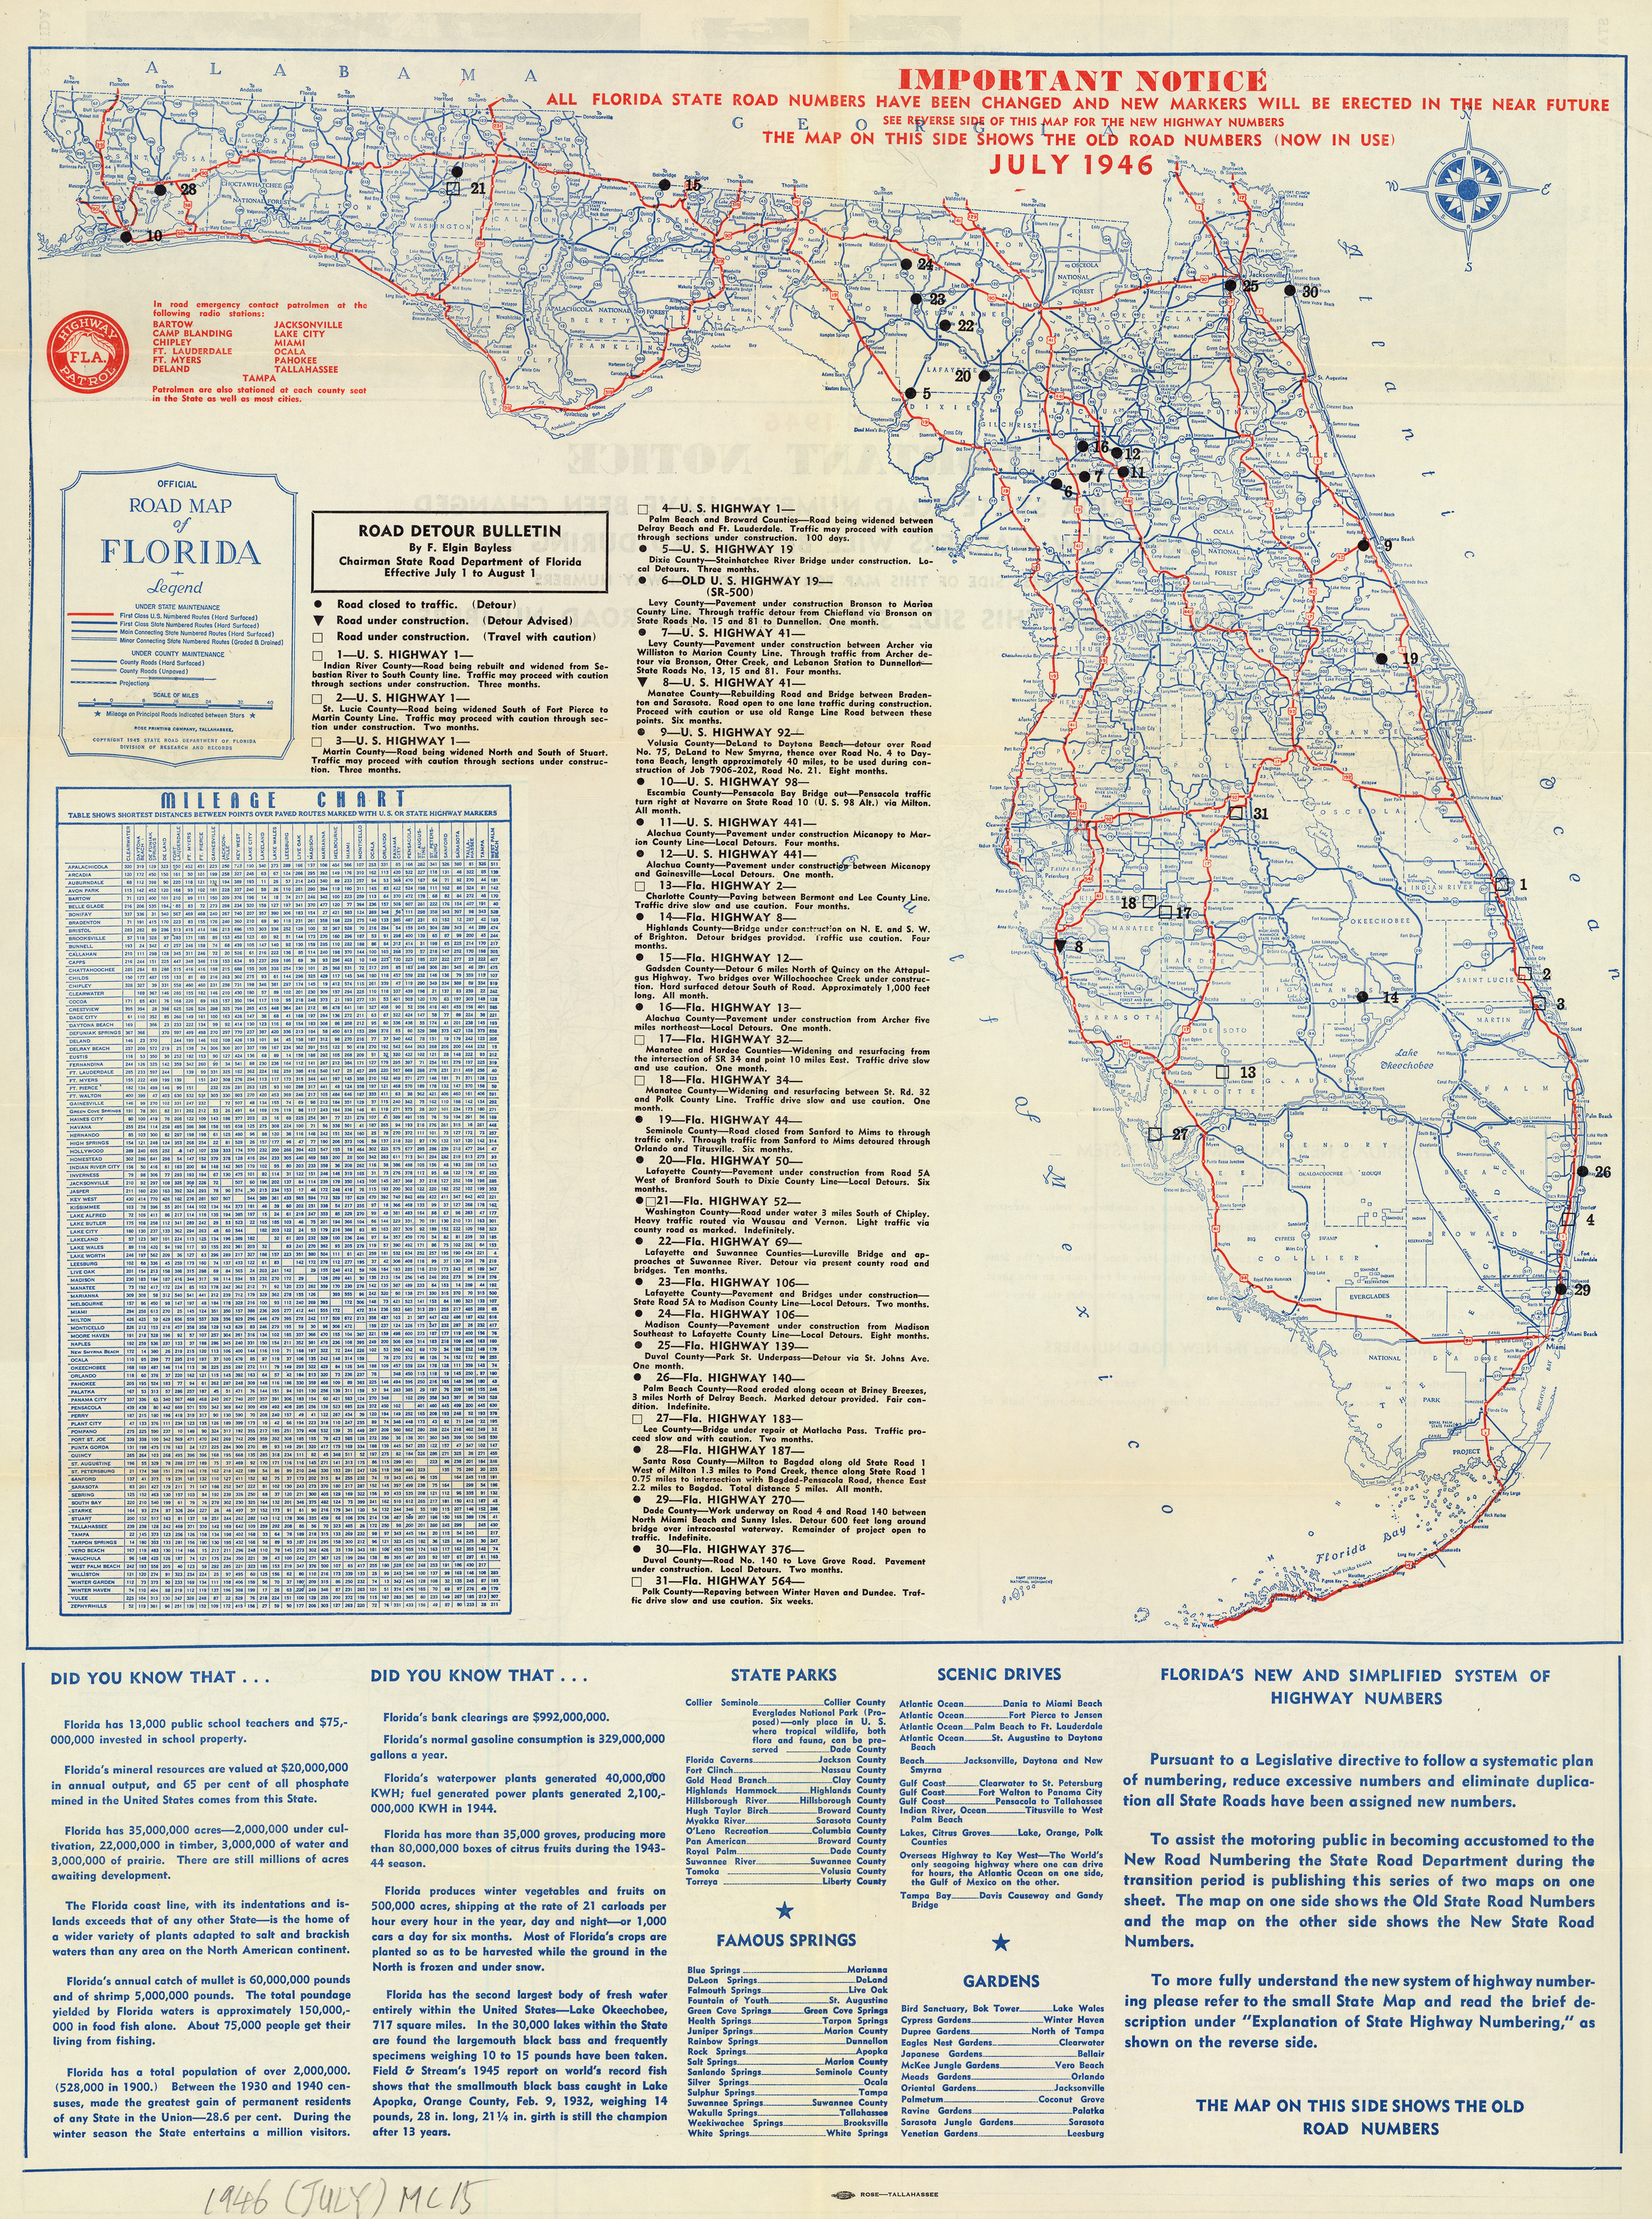 Florida Memory - Official Road Map Of Florida, 1946 - Labelle Florida Map